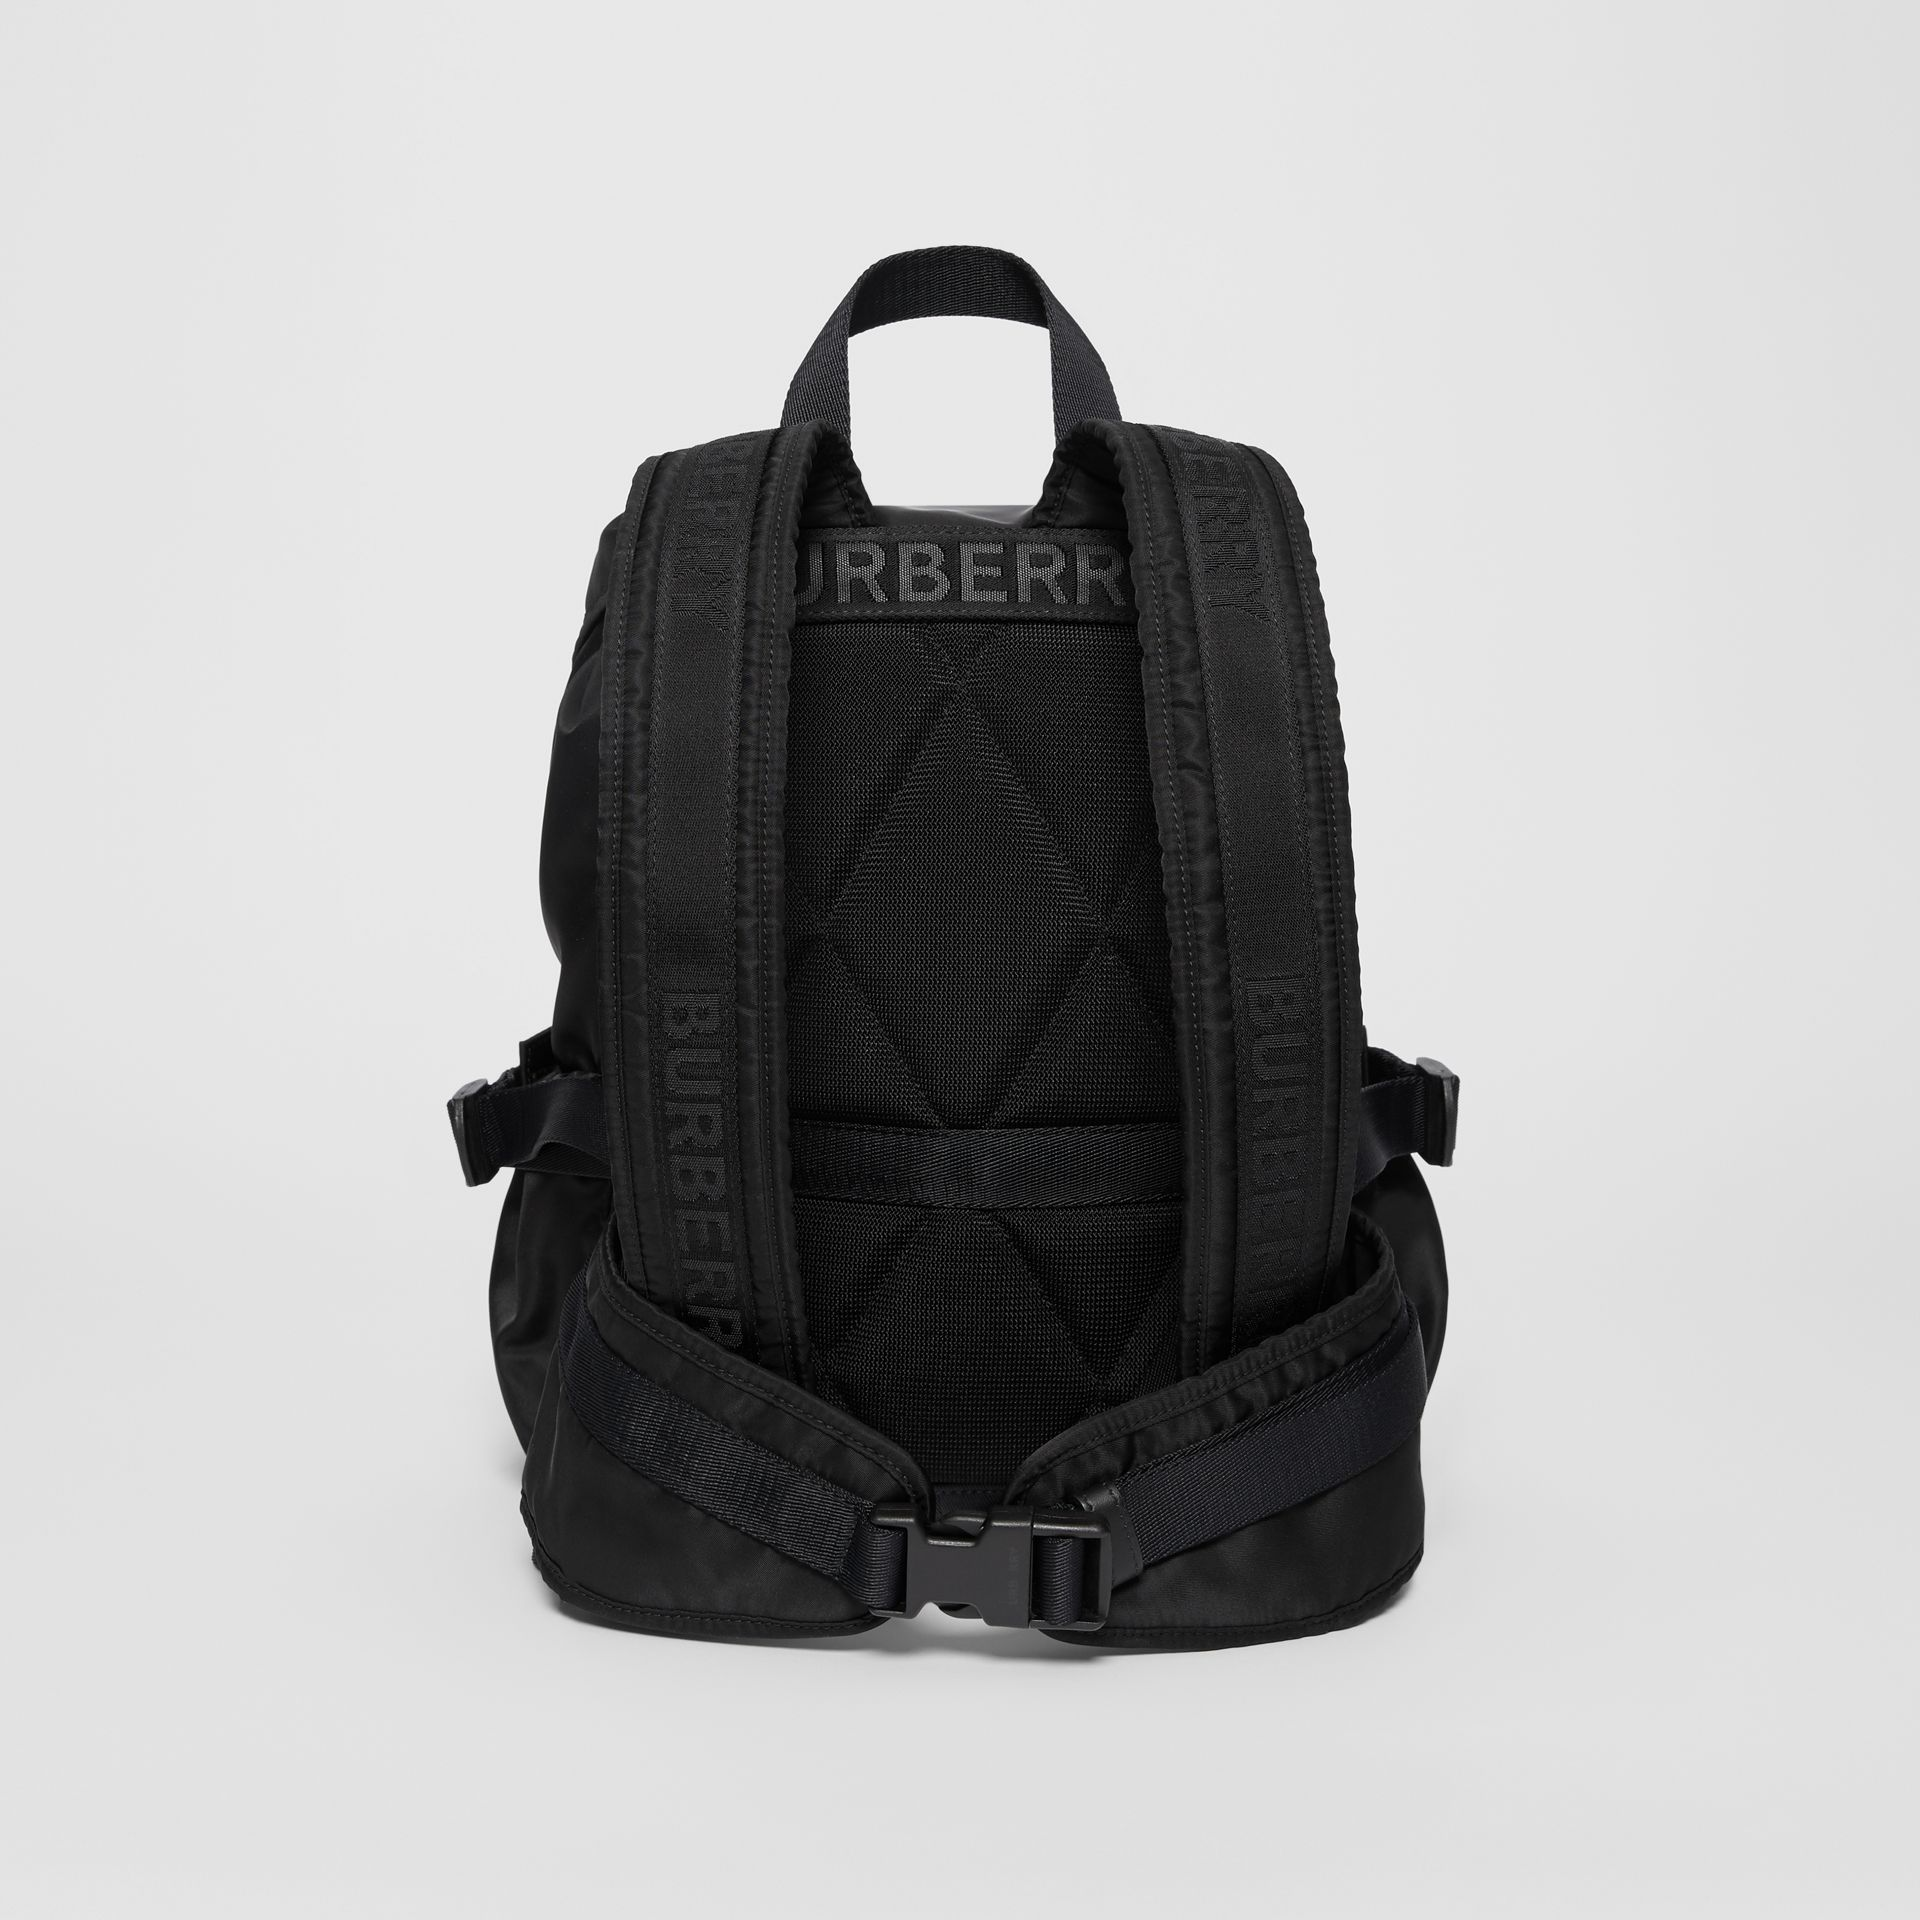 Logo Print Nylon Backpack in Black - Women | Burberry United States - gallery image 7